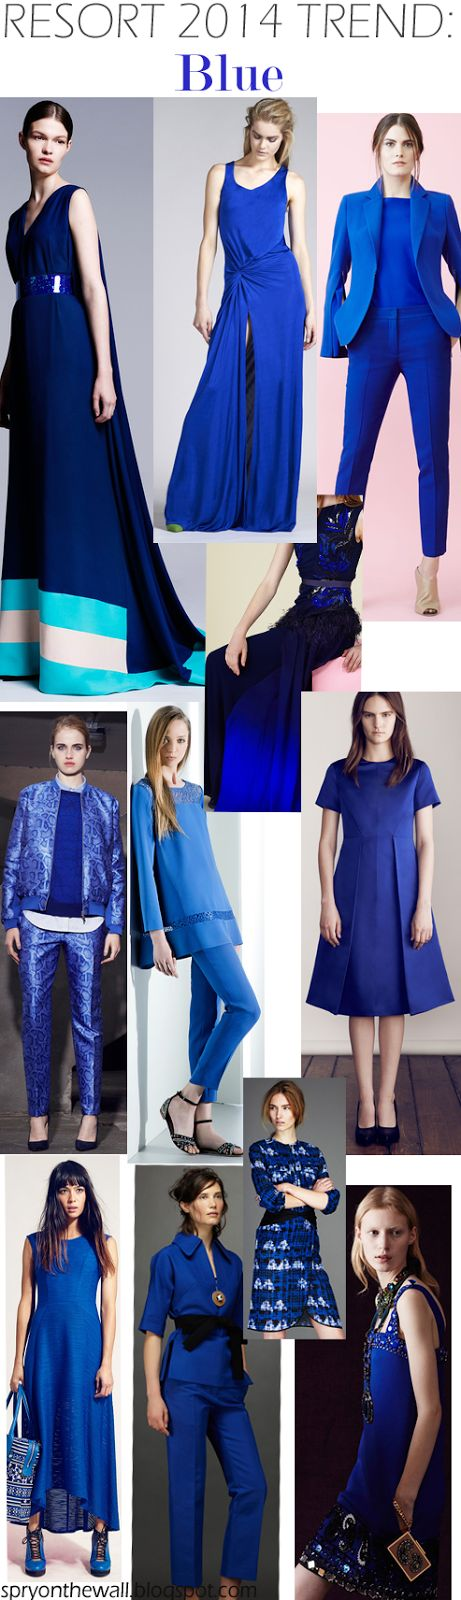 Spry On The Wall's Resort 2014 Trends - Color